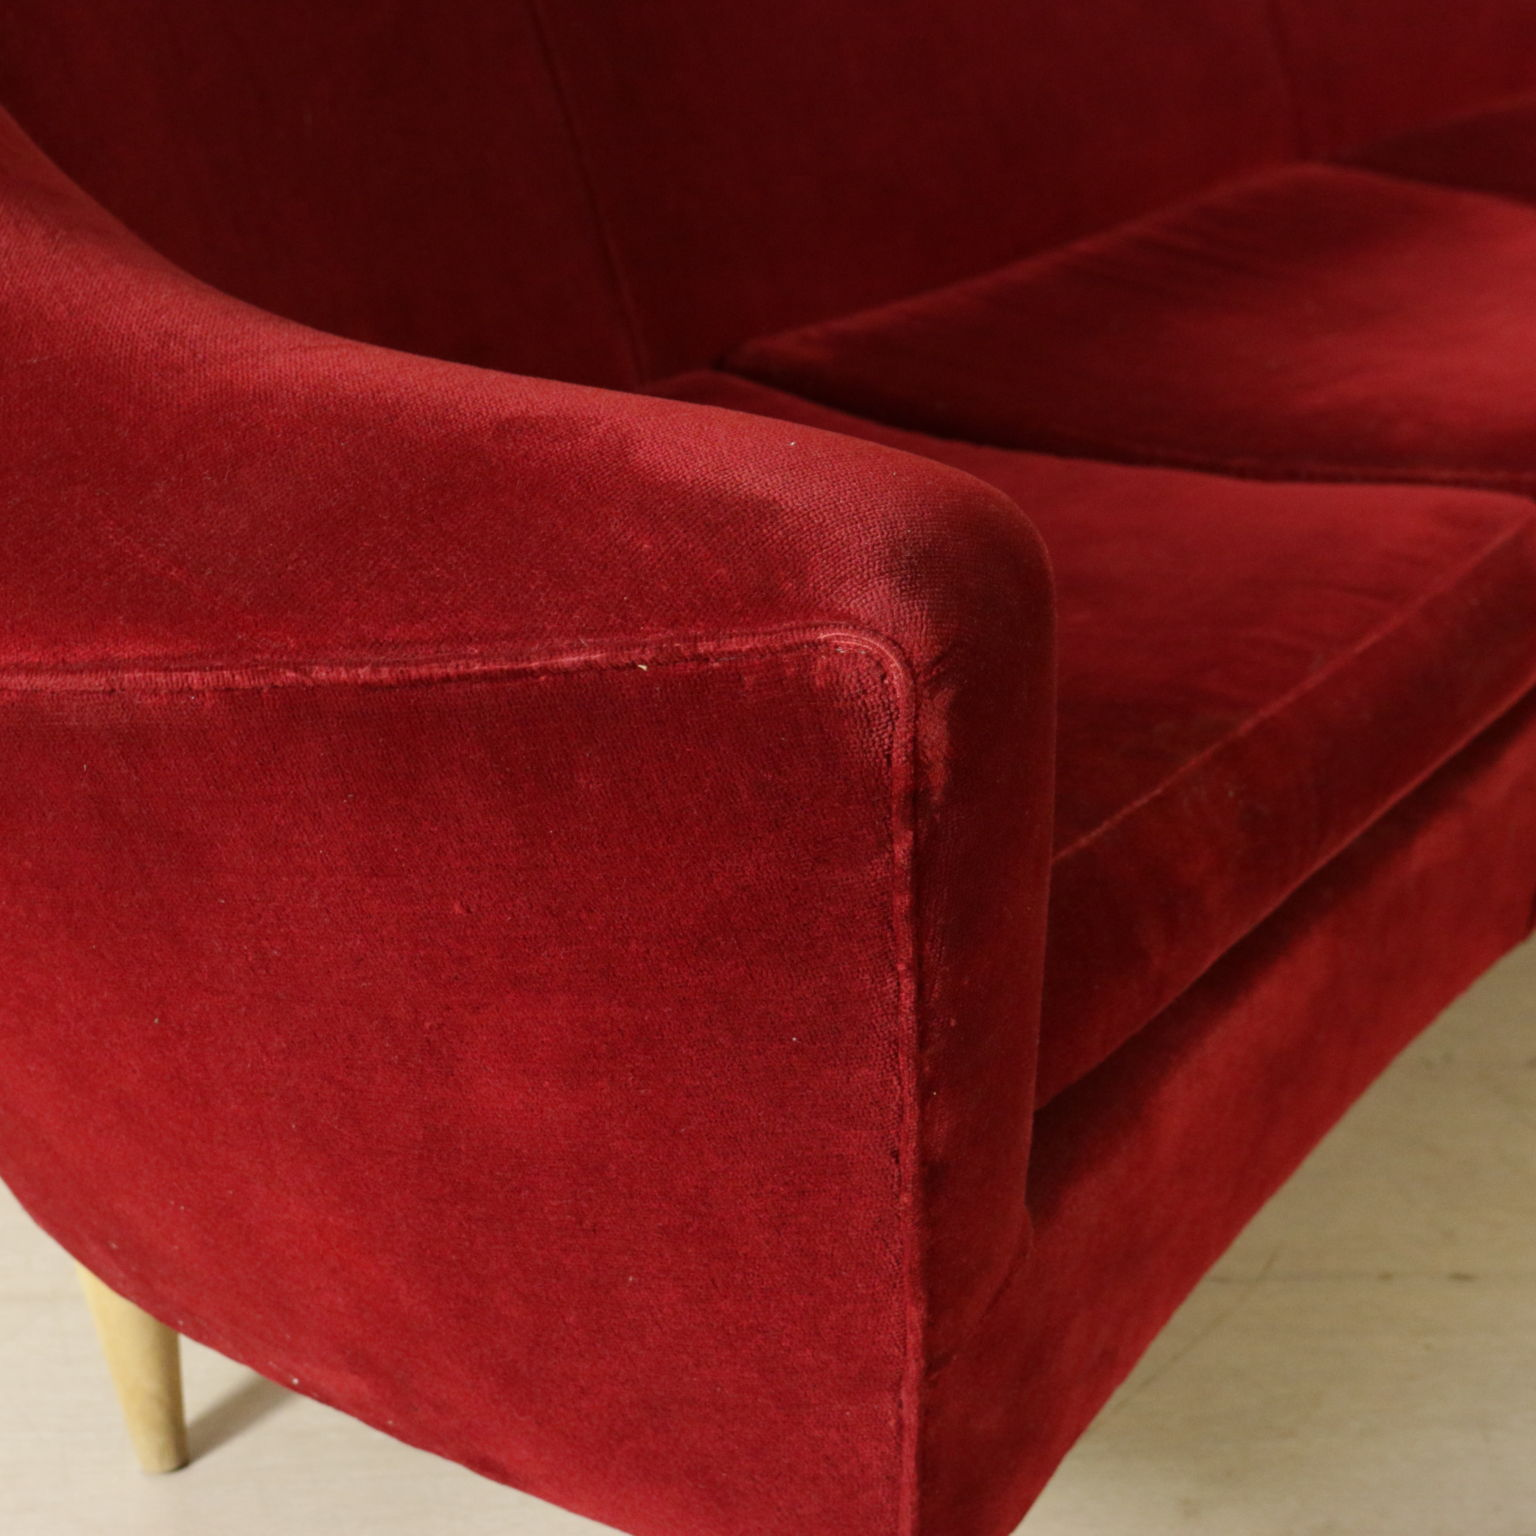 sofa of the 50s